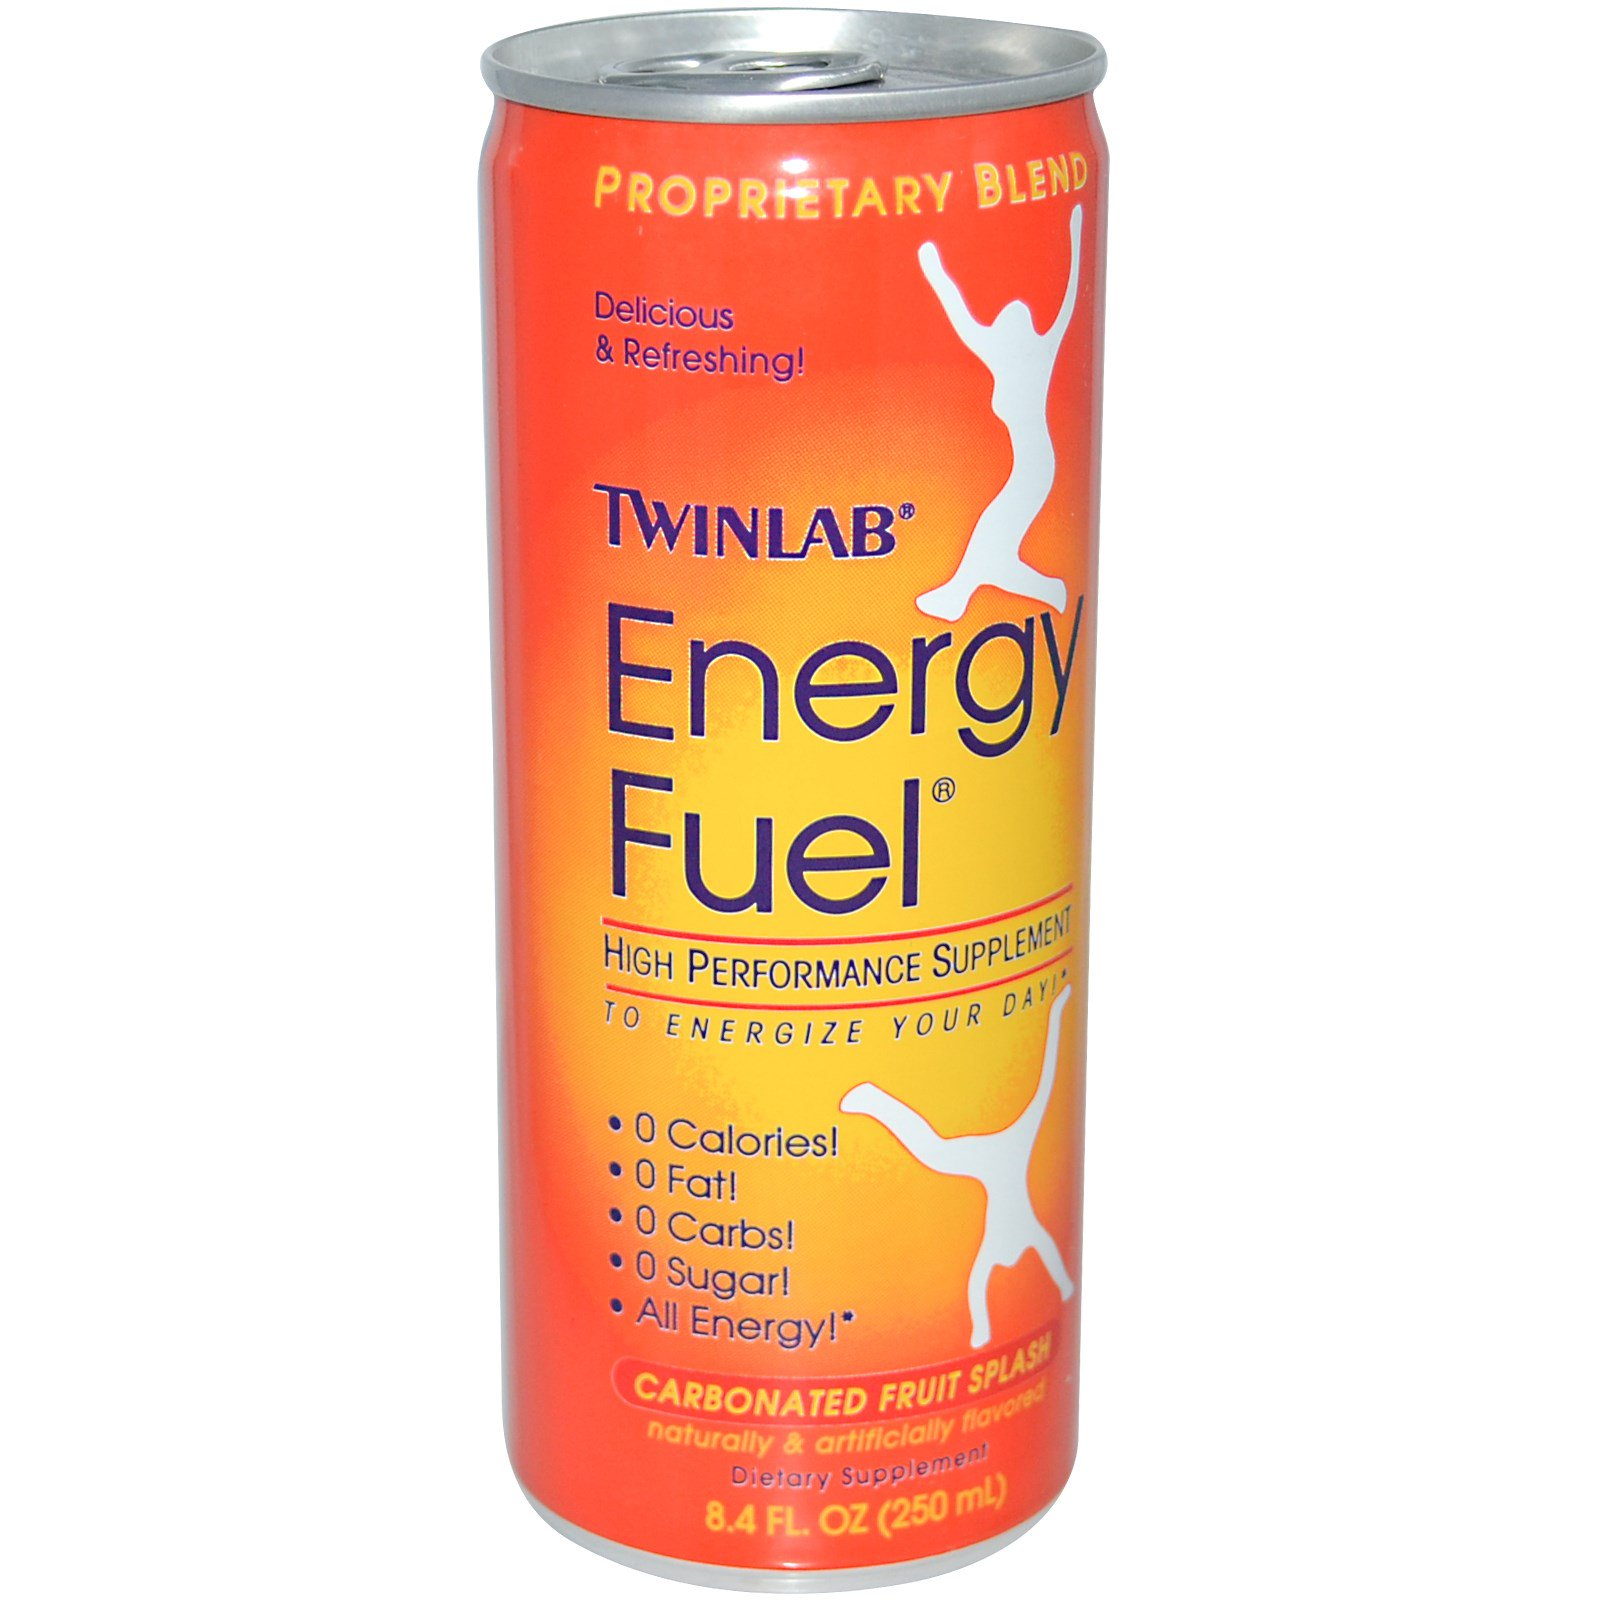 Twinlab Fuel Energy Drink